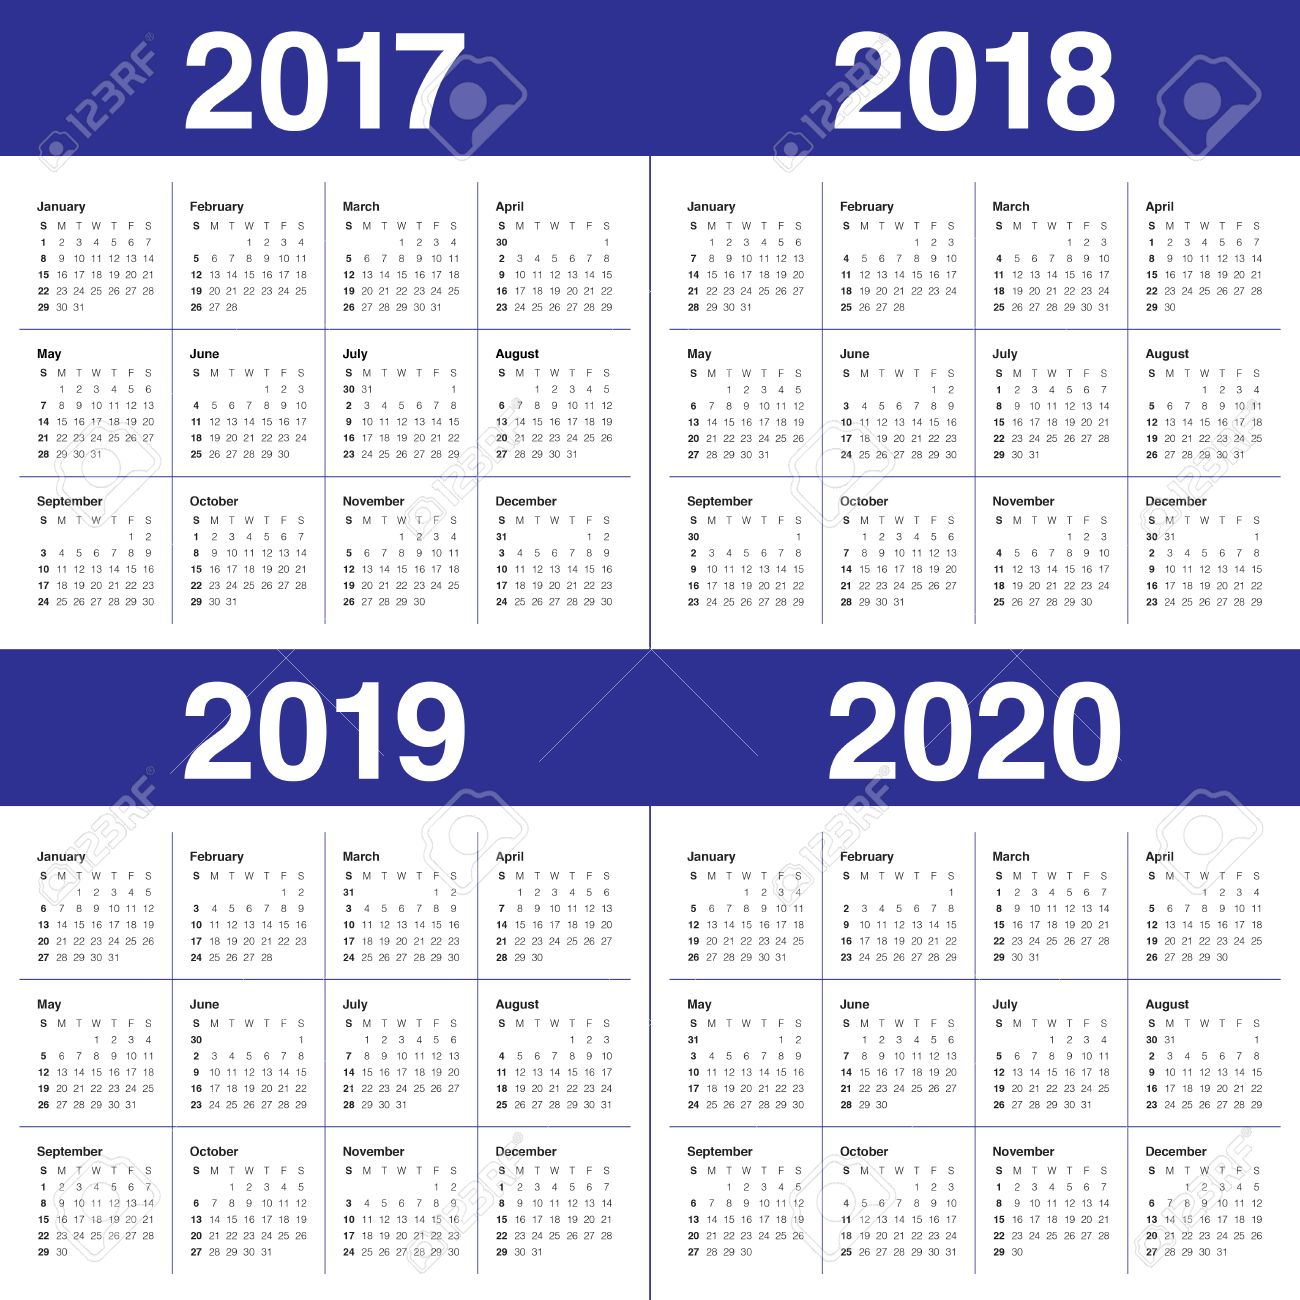 Simple Calendar Template For 2017, 2018, 2019 And 2020 Royalty Free ...